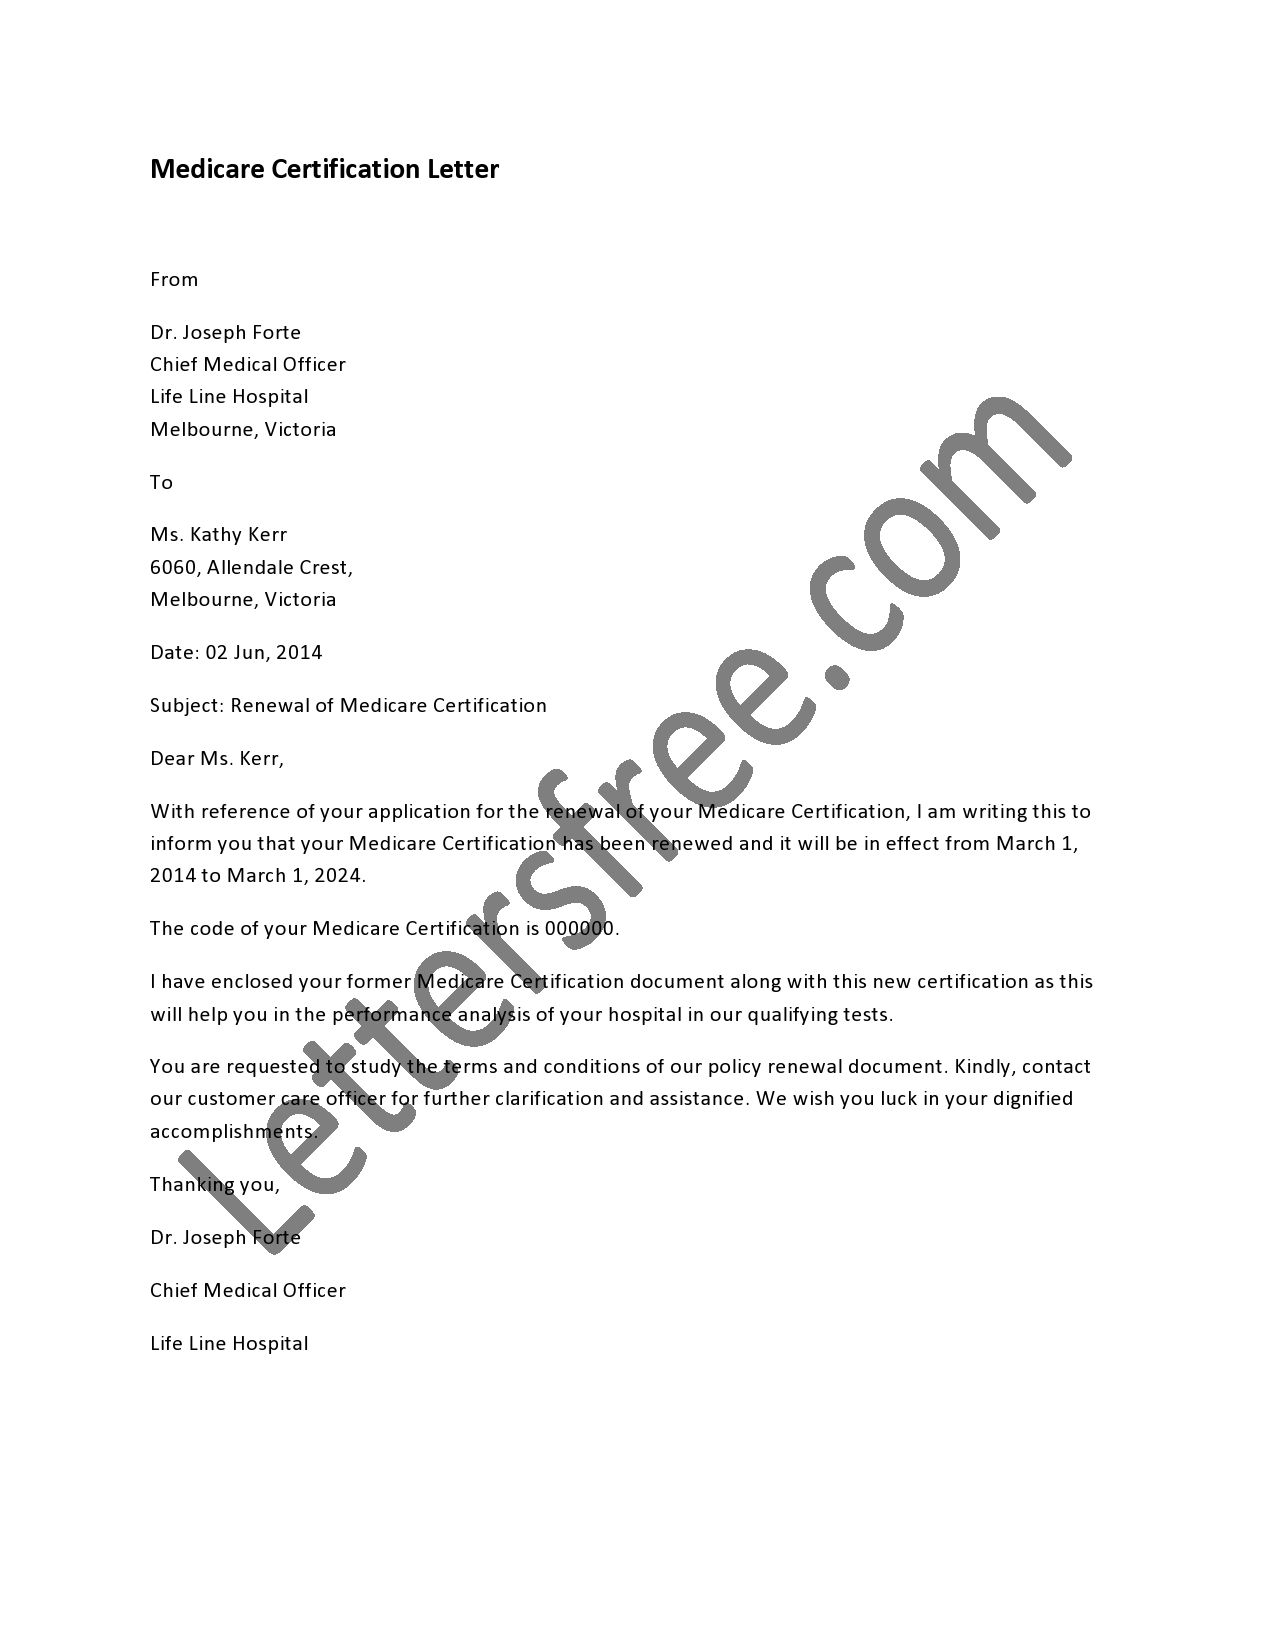 Examples of medicare certification letter in a well